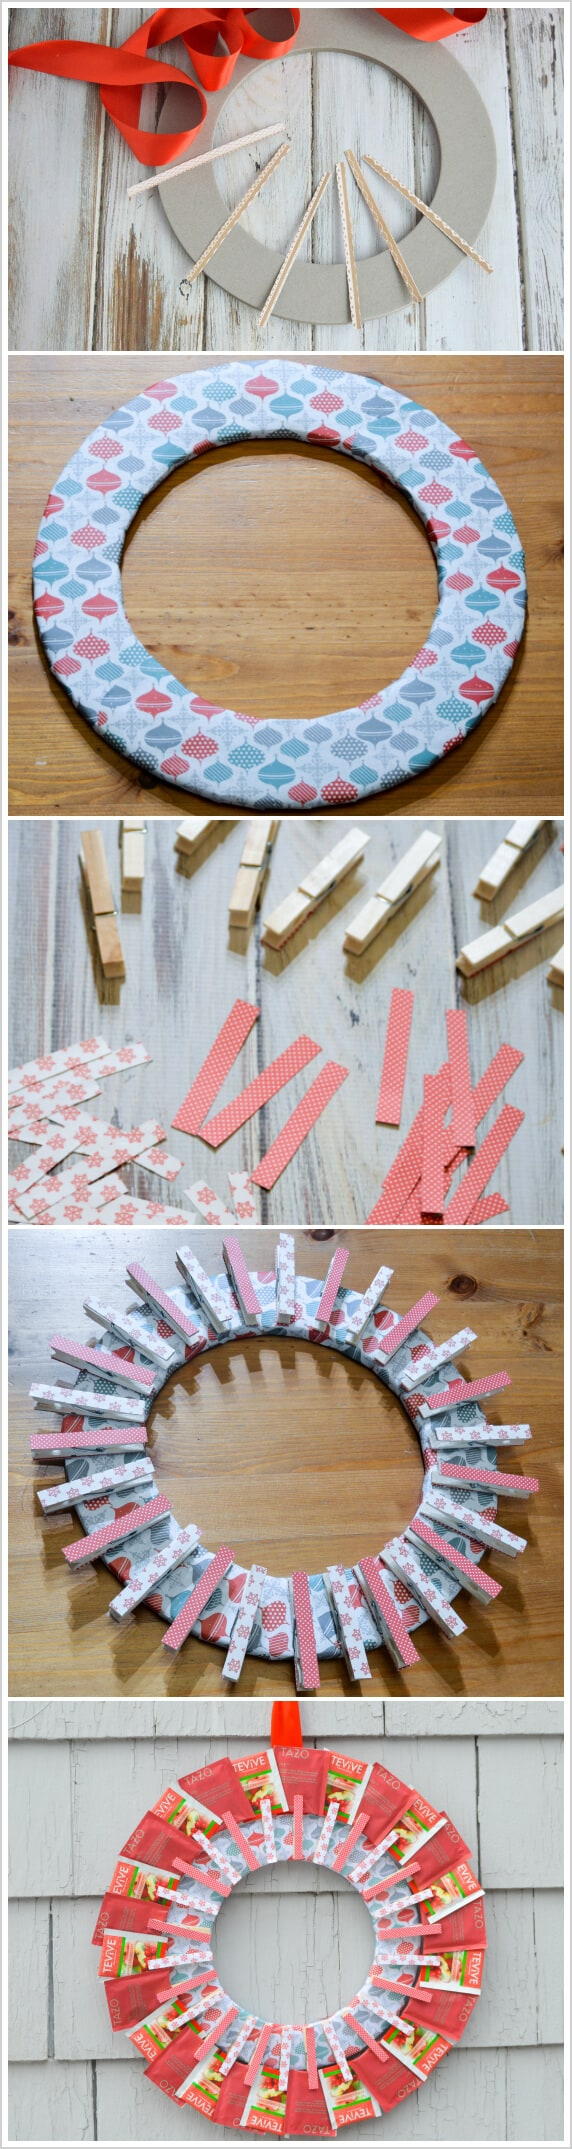 diy tea bag wreath tutorial